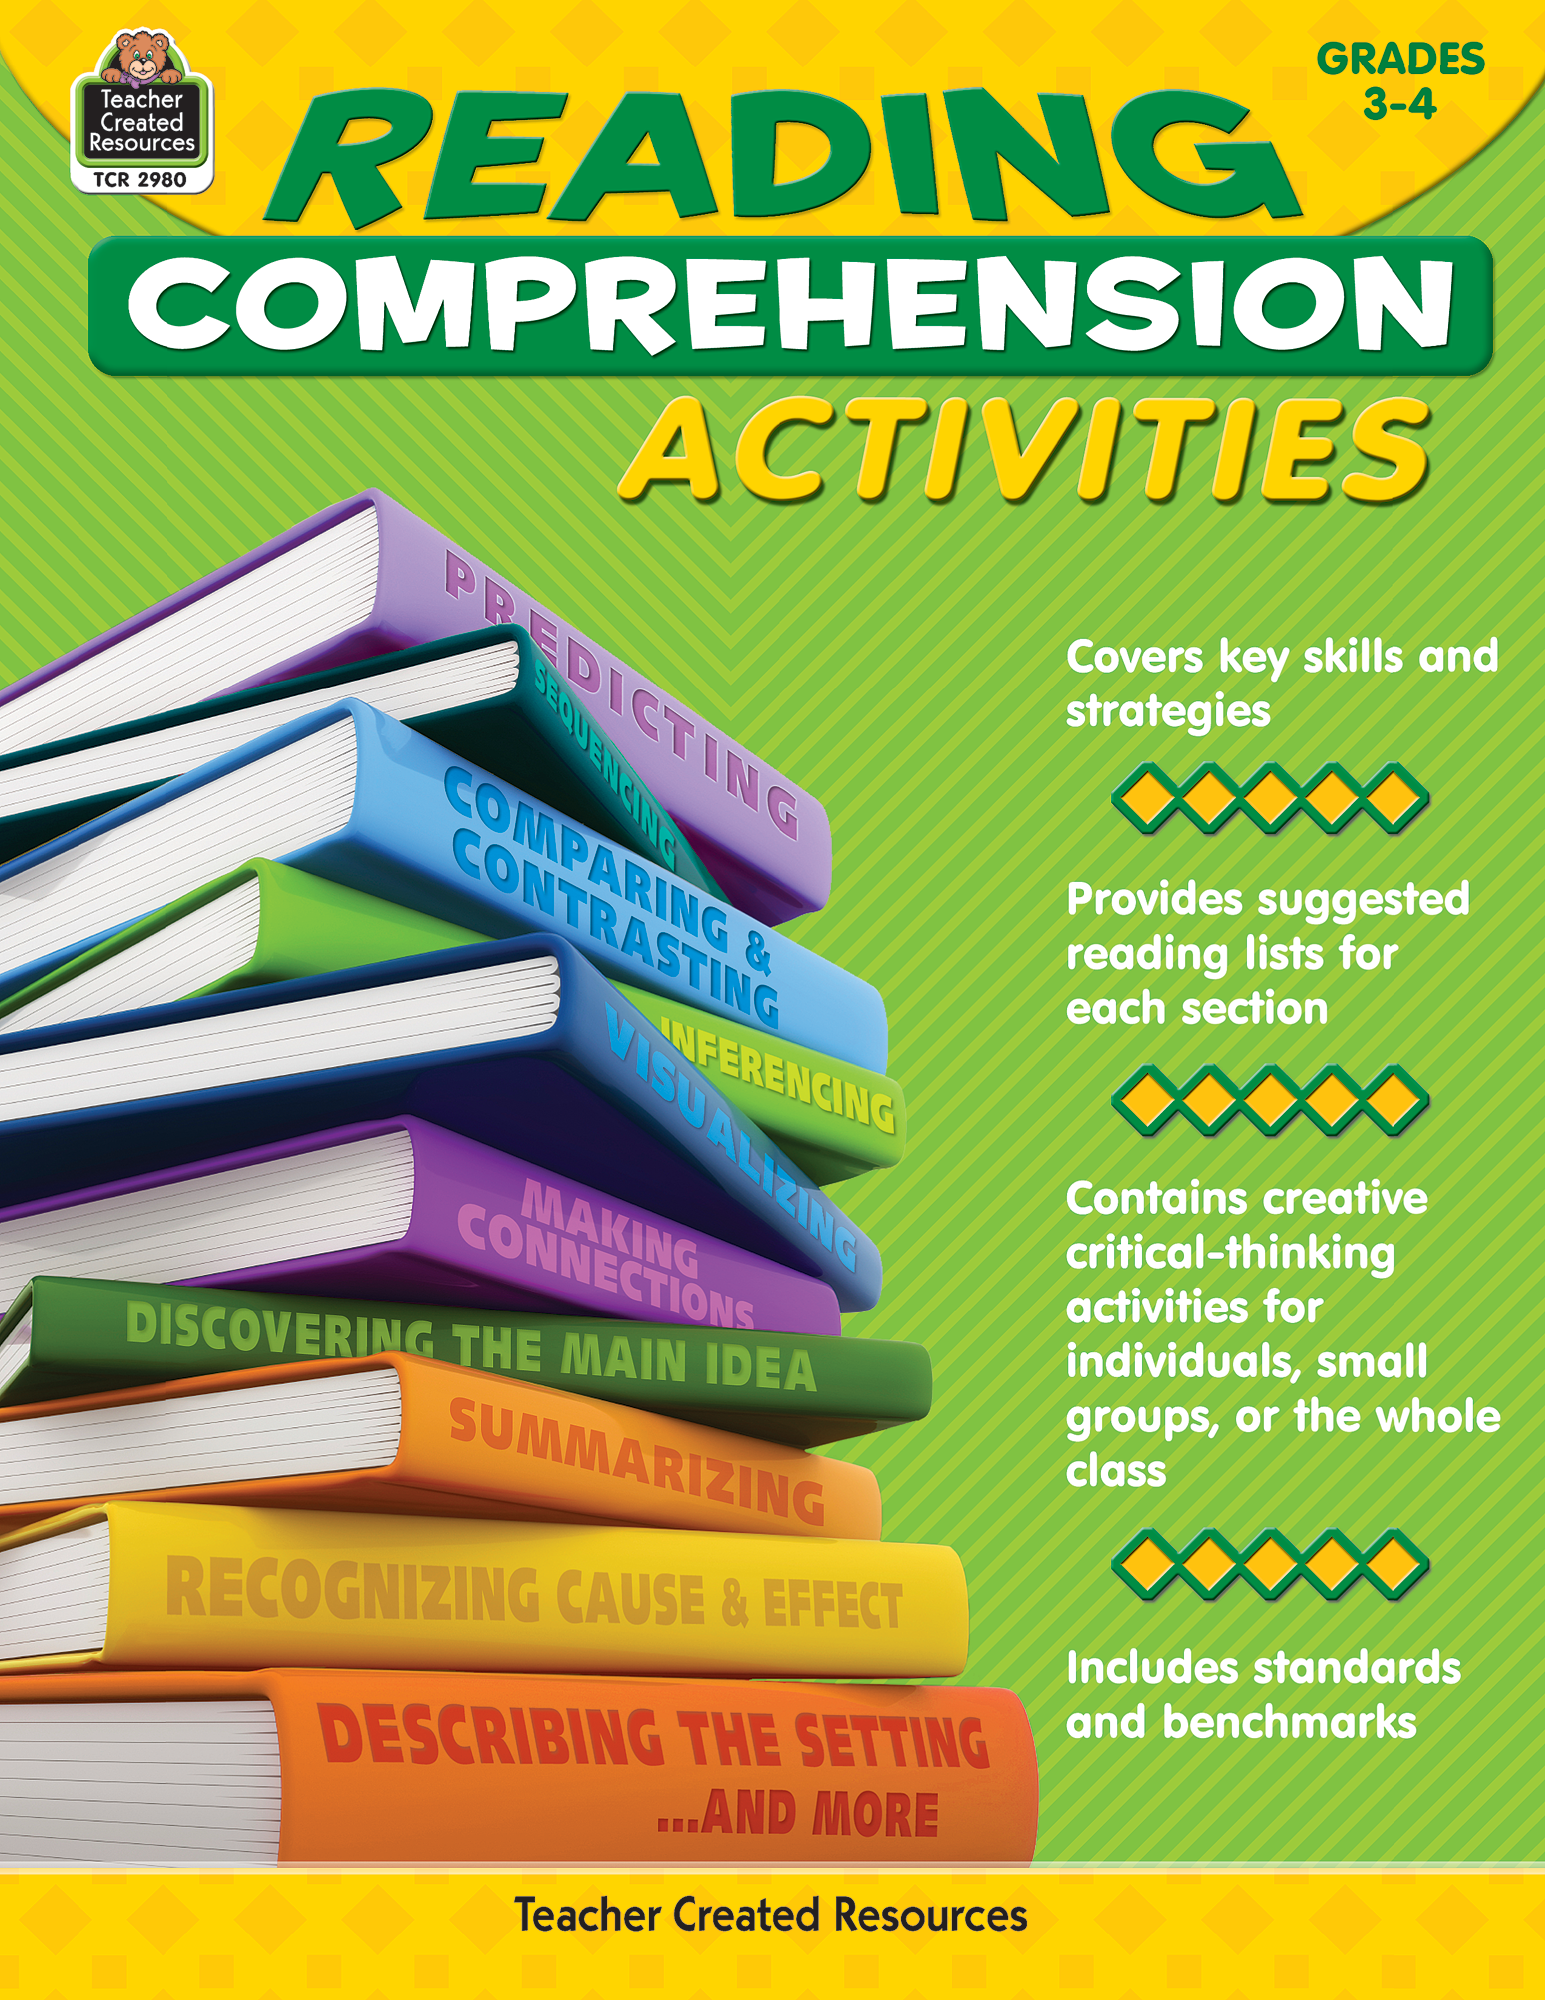 - Reading Comprehension Activities Grade 3-4 - TCR2980 Teacher